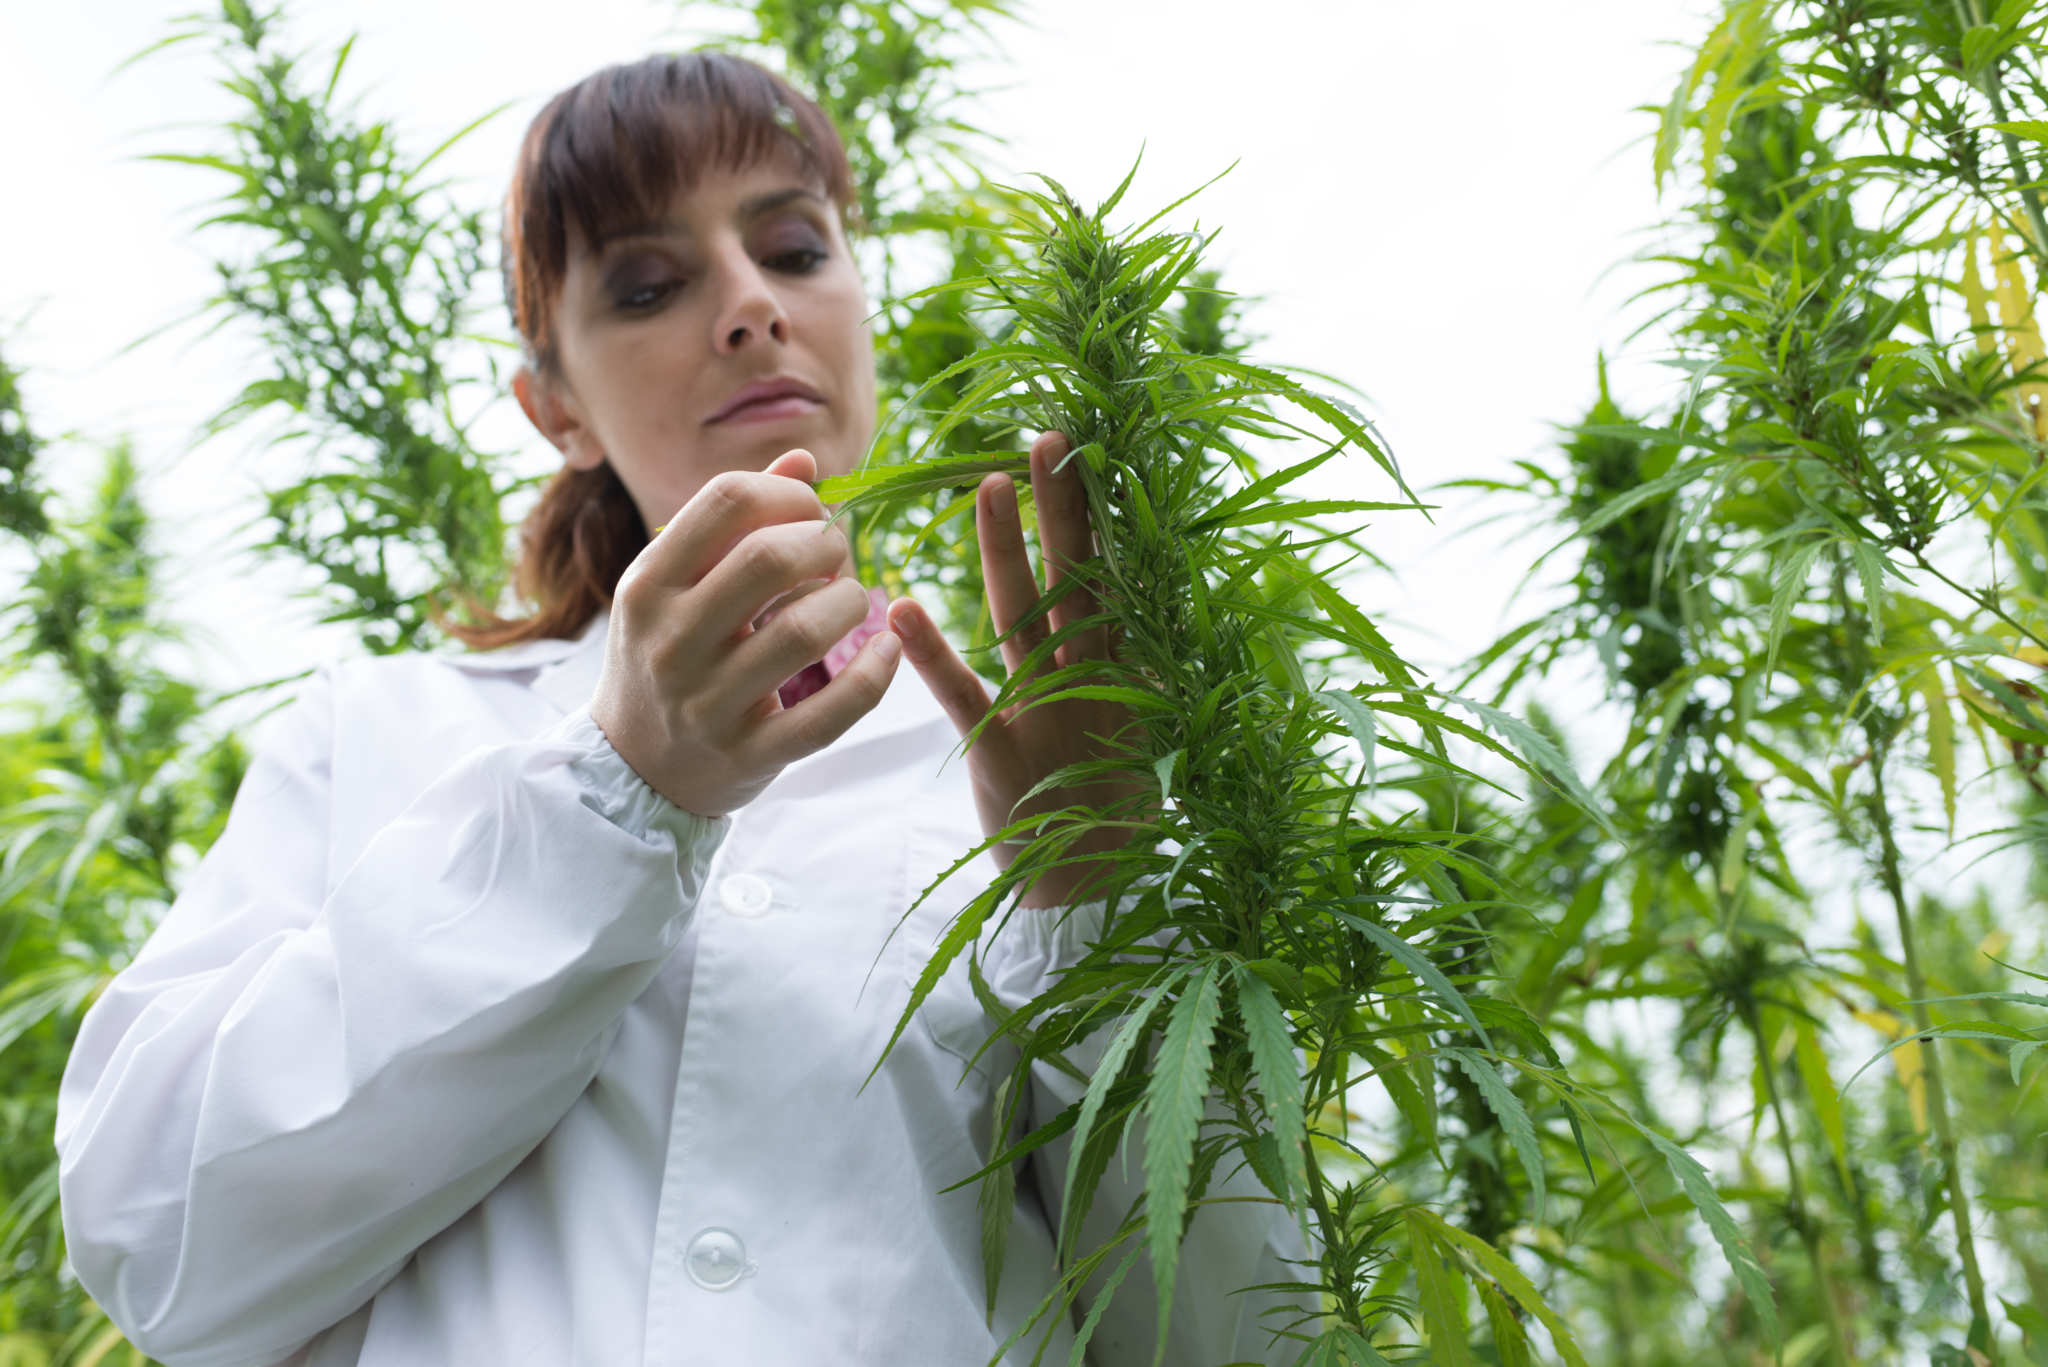 A researcher studies a hemp plant in a field. Hemp and cannabis contain numerous other cannabinoids beyond THC & CBD. These include CBC-a, CBDV, and many more.